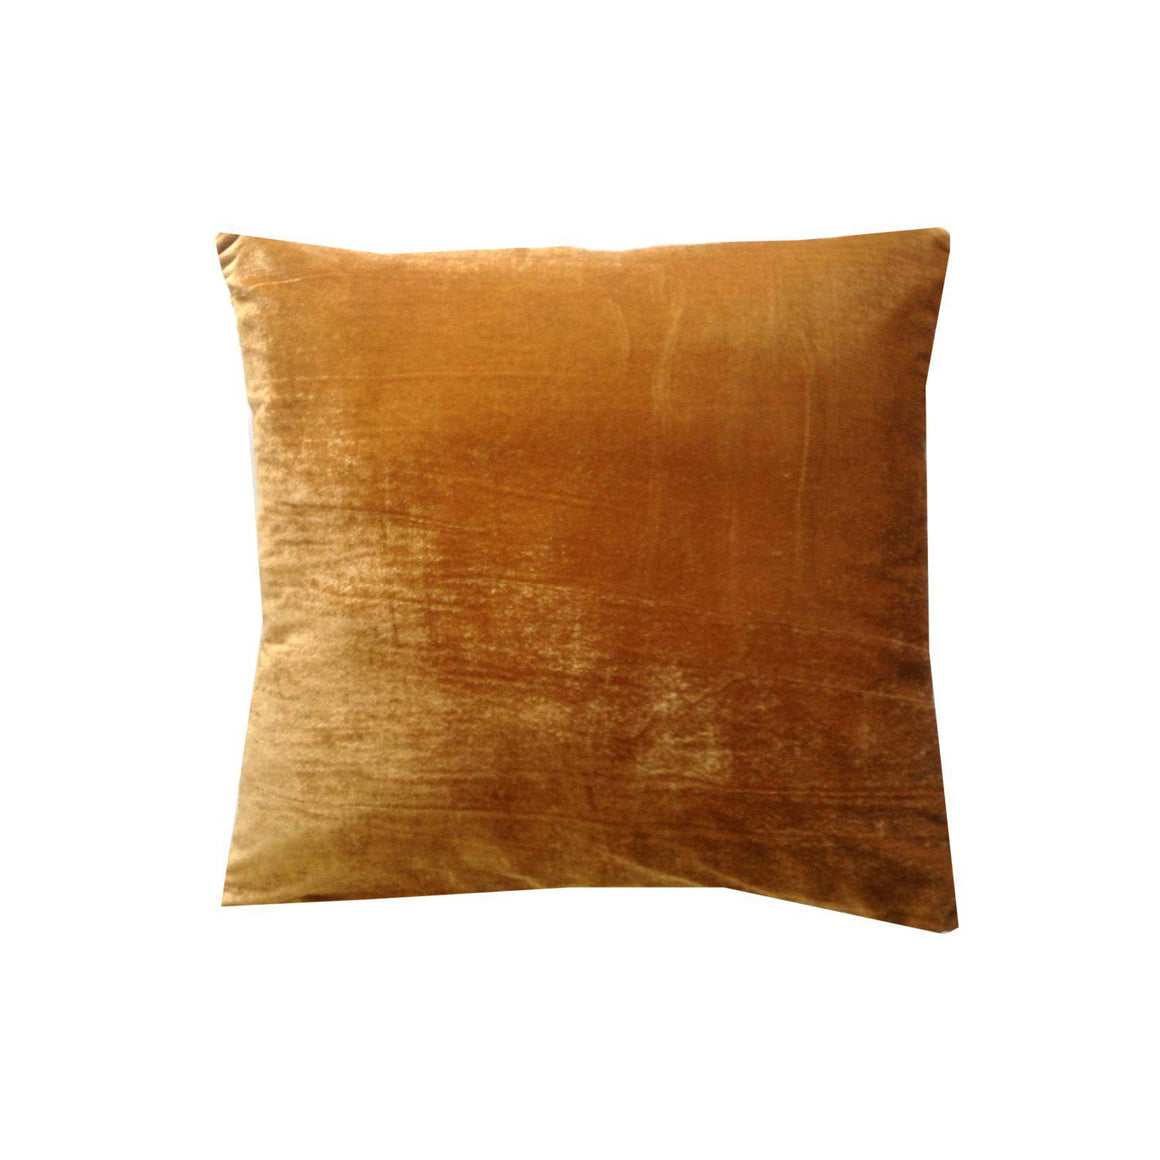 Fall Decor, Velvet Pillows, Brown Bedroom Decor, Velvet sofa pillows, Velvet bed pillows